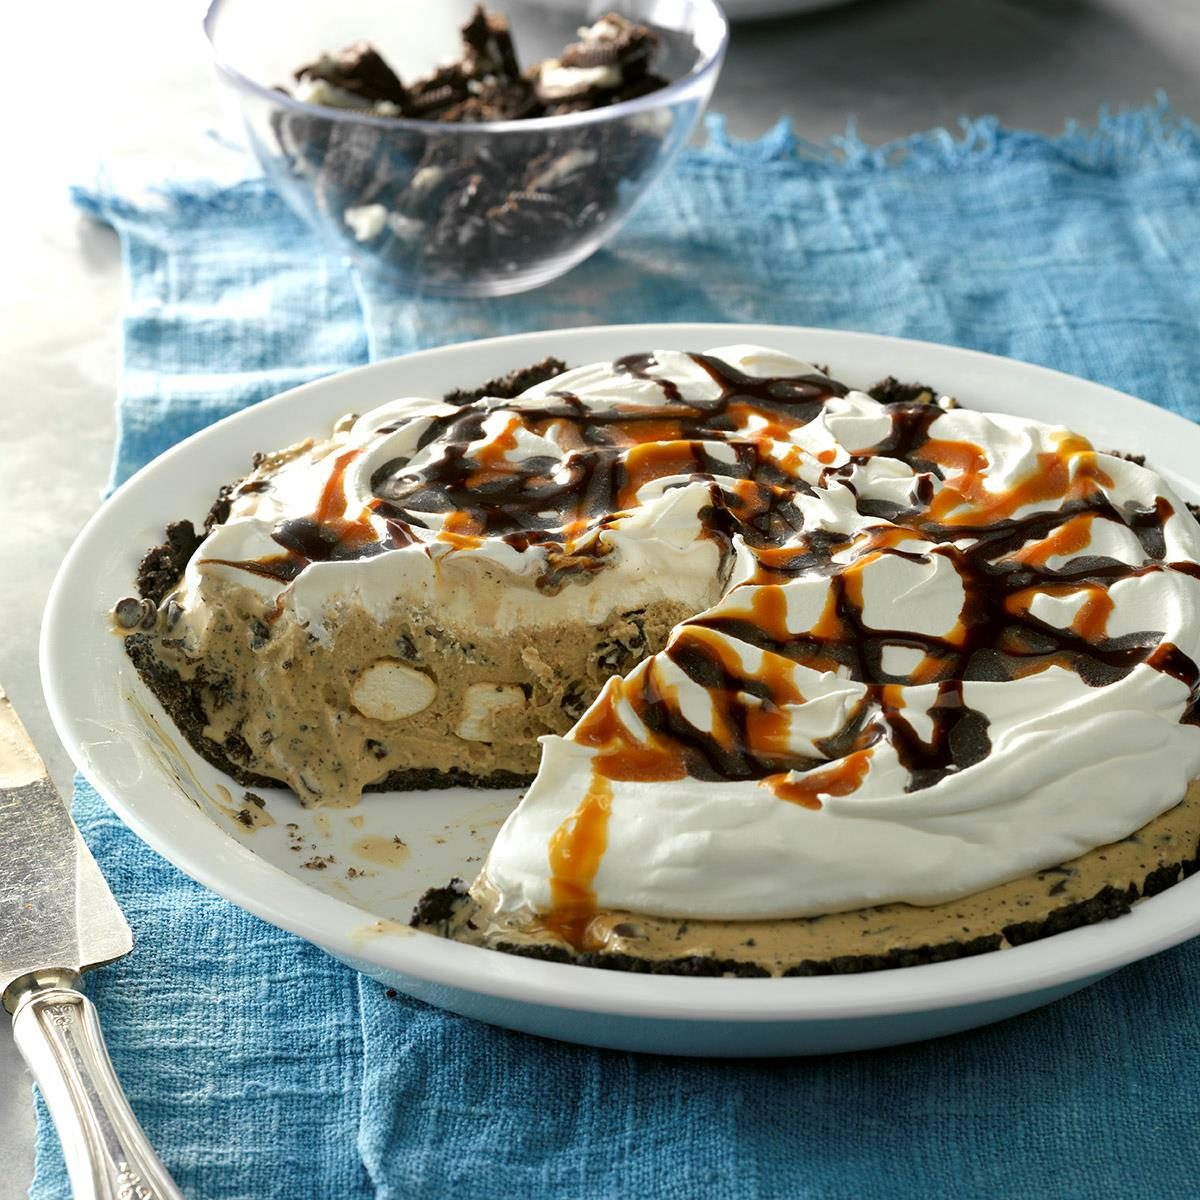 September 6: National Coffee Ice Cream Day